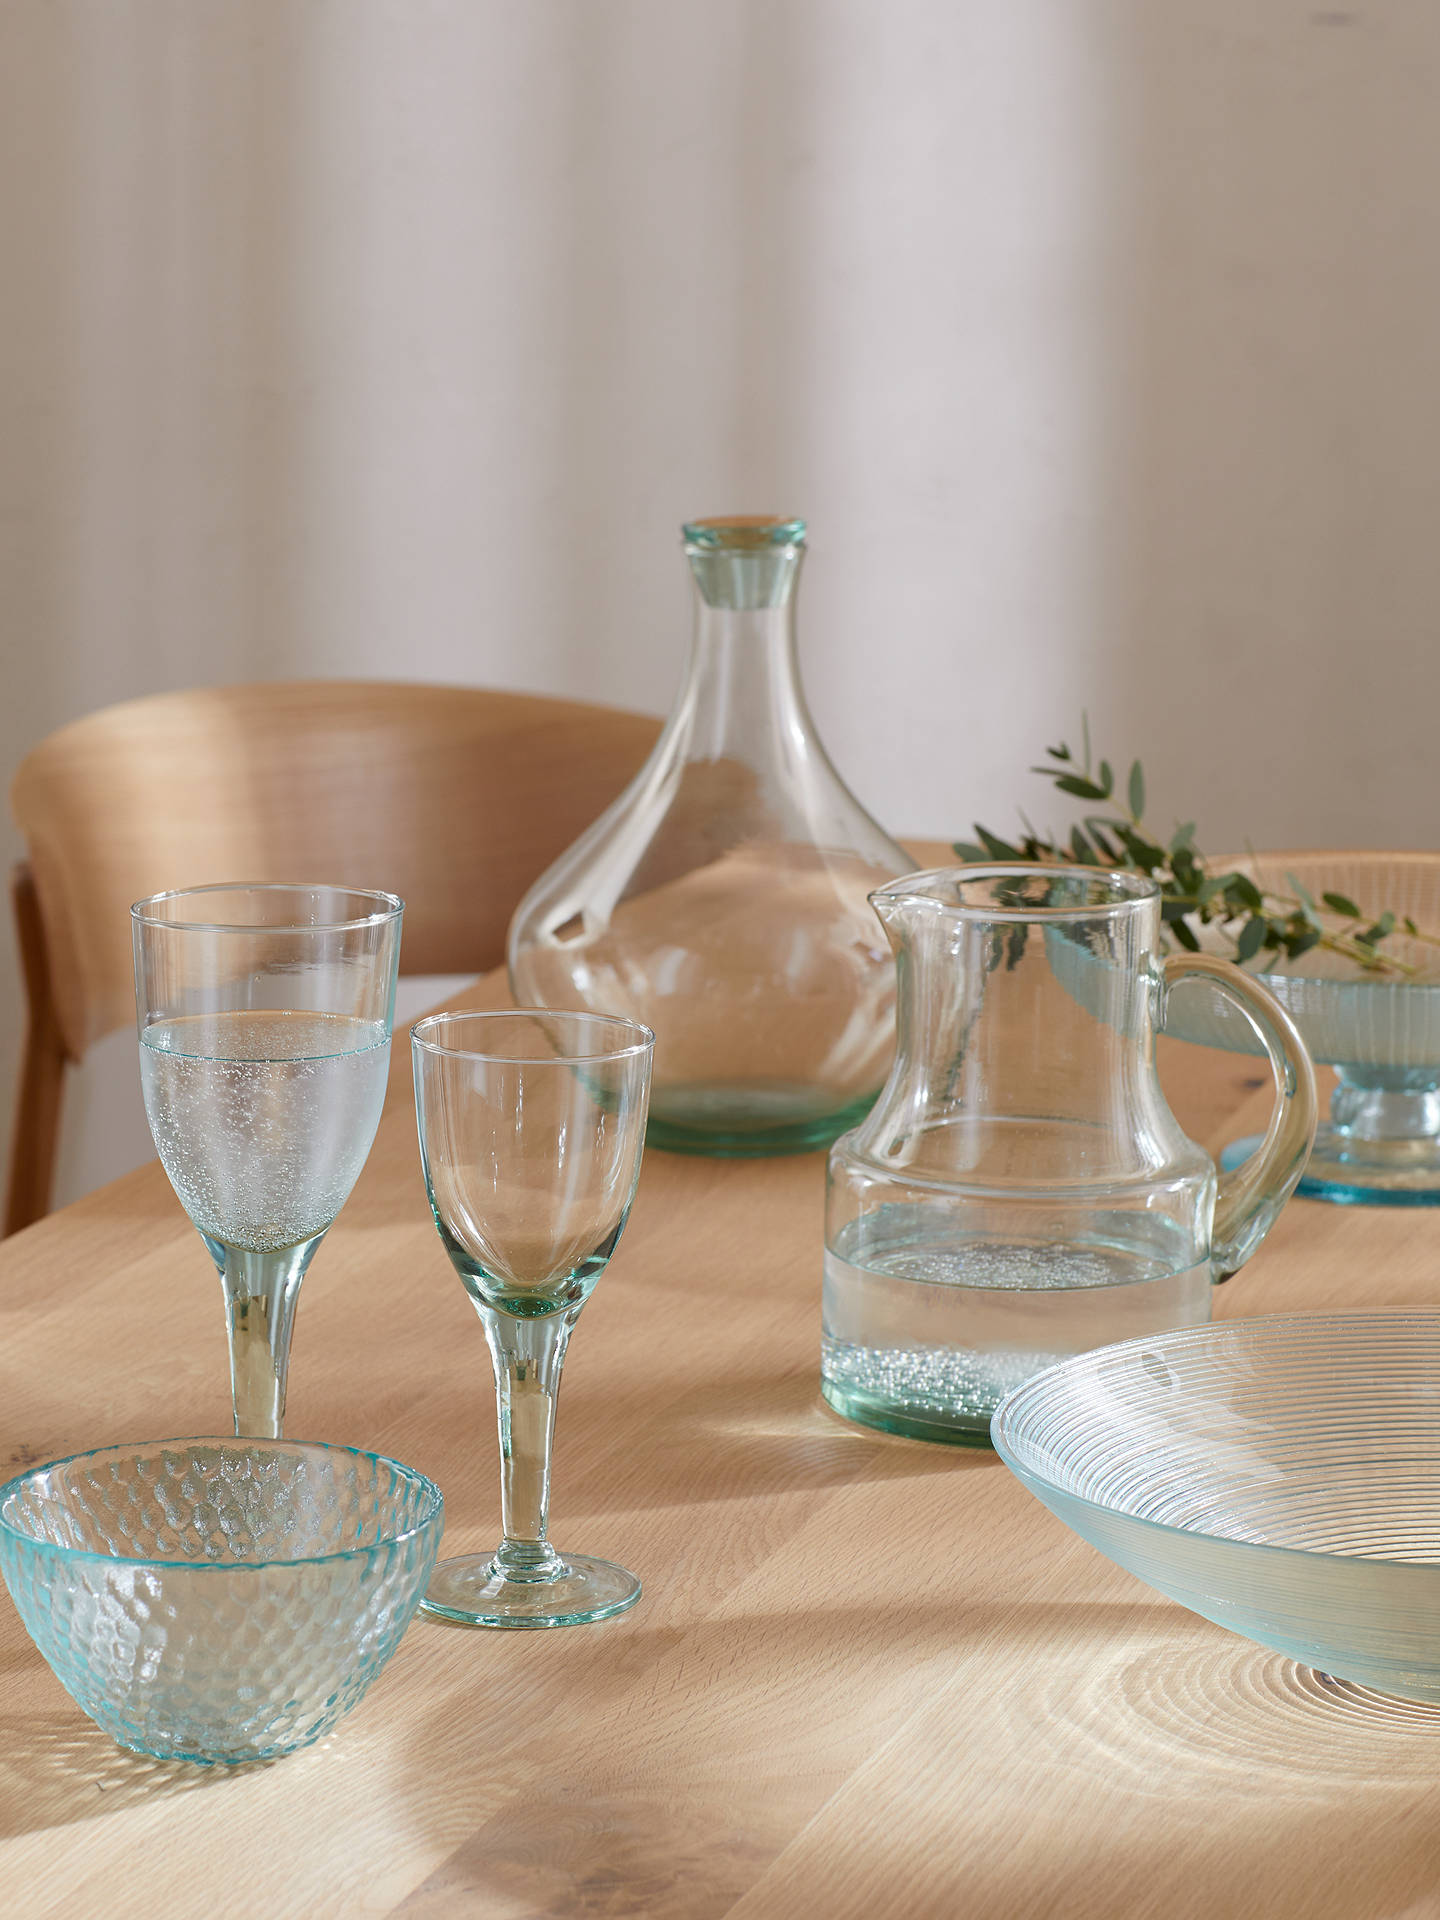 Buy Croft Collection Recycled Glass White Wine Glass, 210ml, Clear Online at johnlewis.com